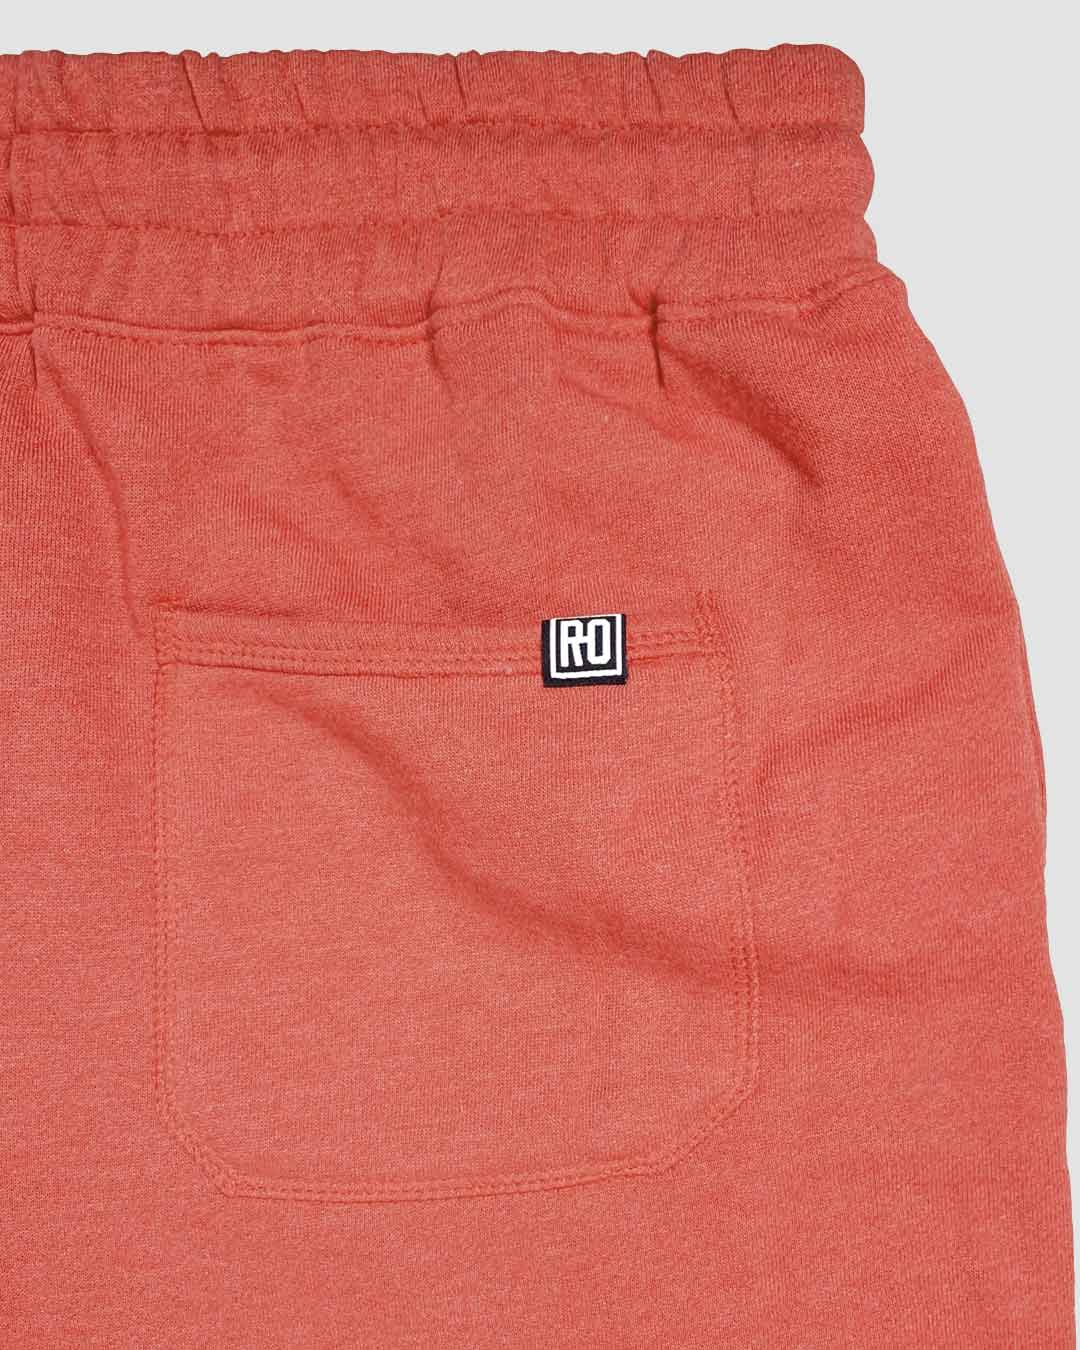 Ali Deer Lake 72 Legacy Sweatpants - Roots of Inc dba Roots of Fight